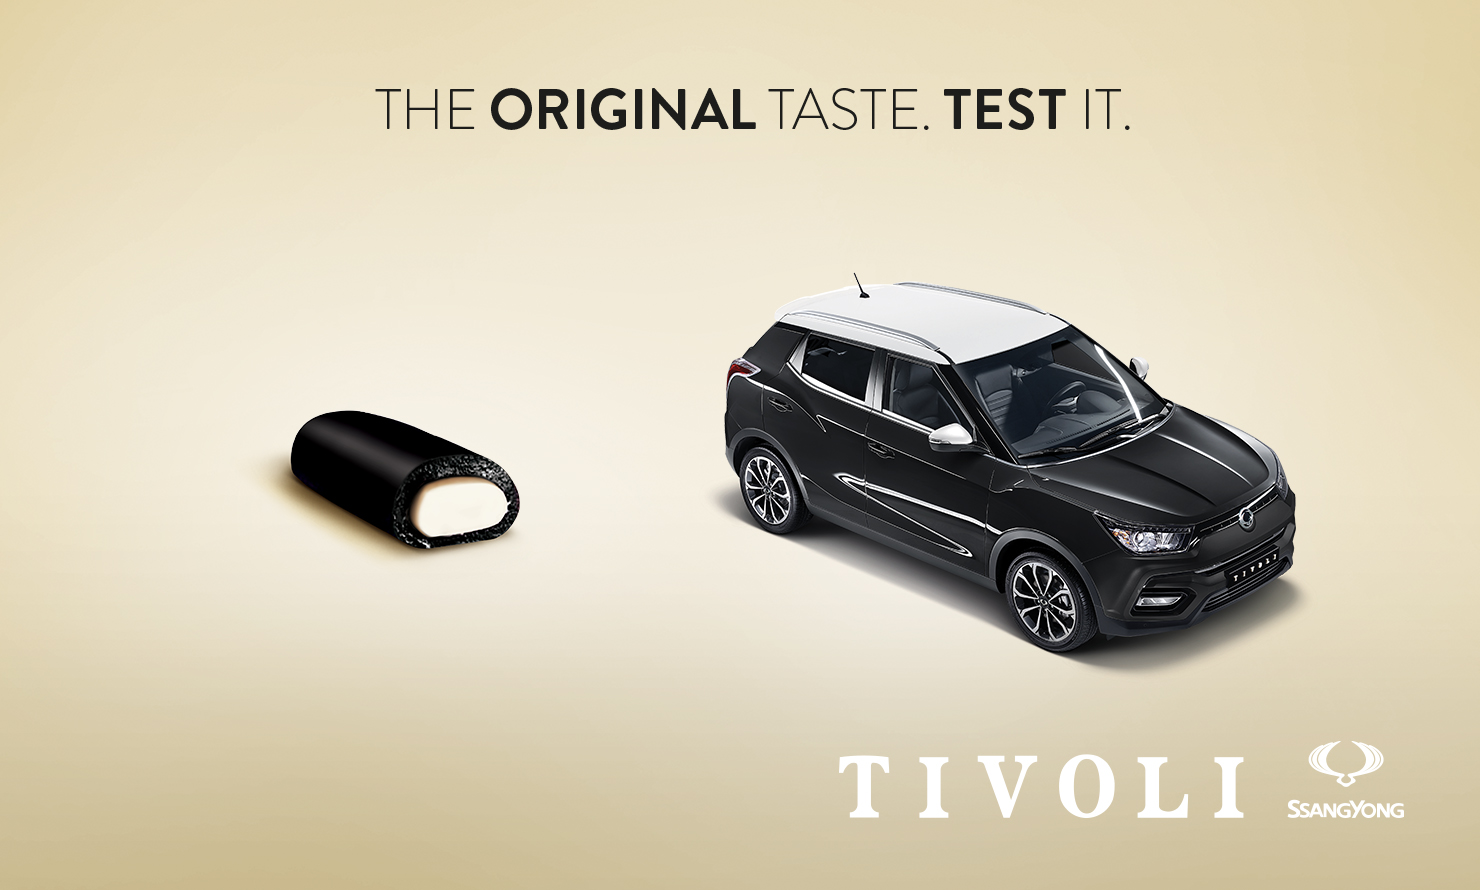 https://www.kubelibre.com/uploads/Slider-work-tutti-clienti/ssangyong-tivoli-the-original-taste-test-it-3.jpg